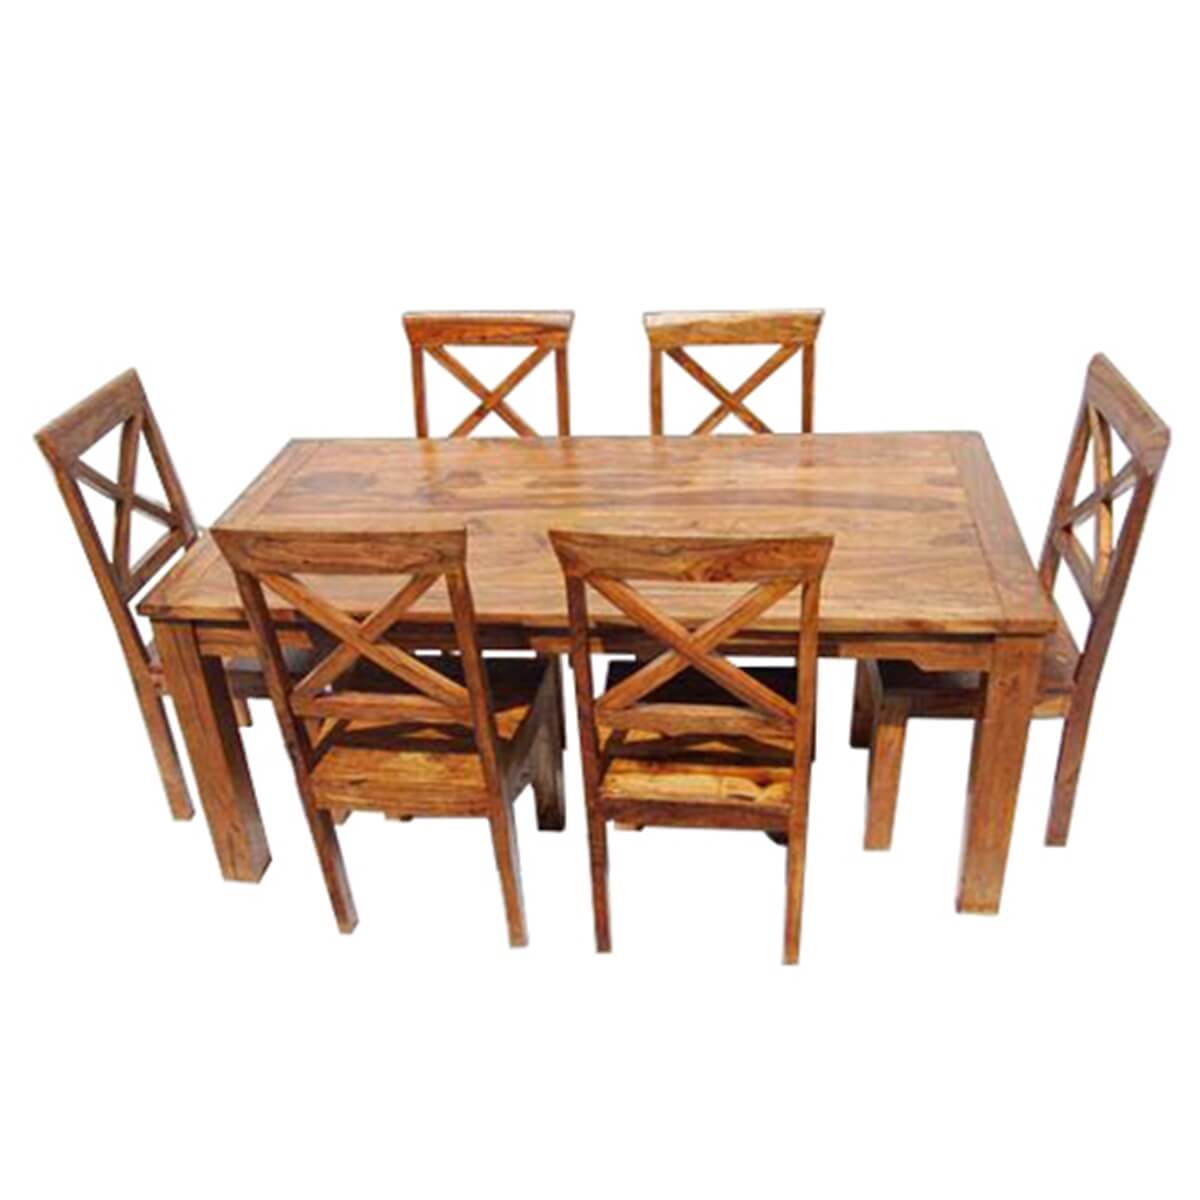 Solid Wood Dining Table Sets: Rustic Solid Wood Oklahoma Dining Table & Chair Set